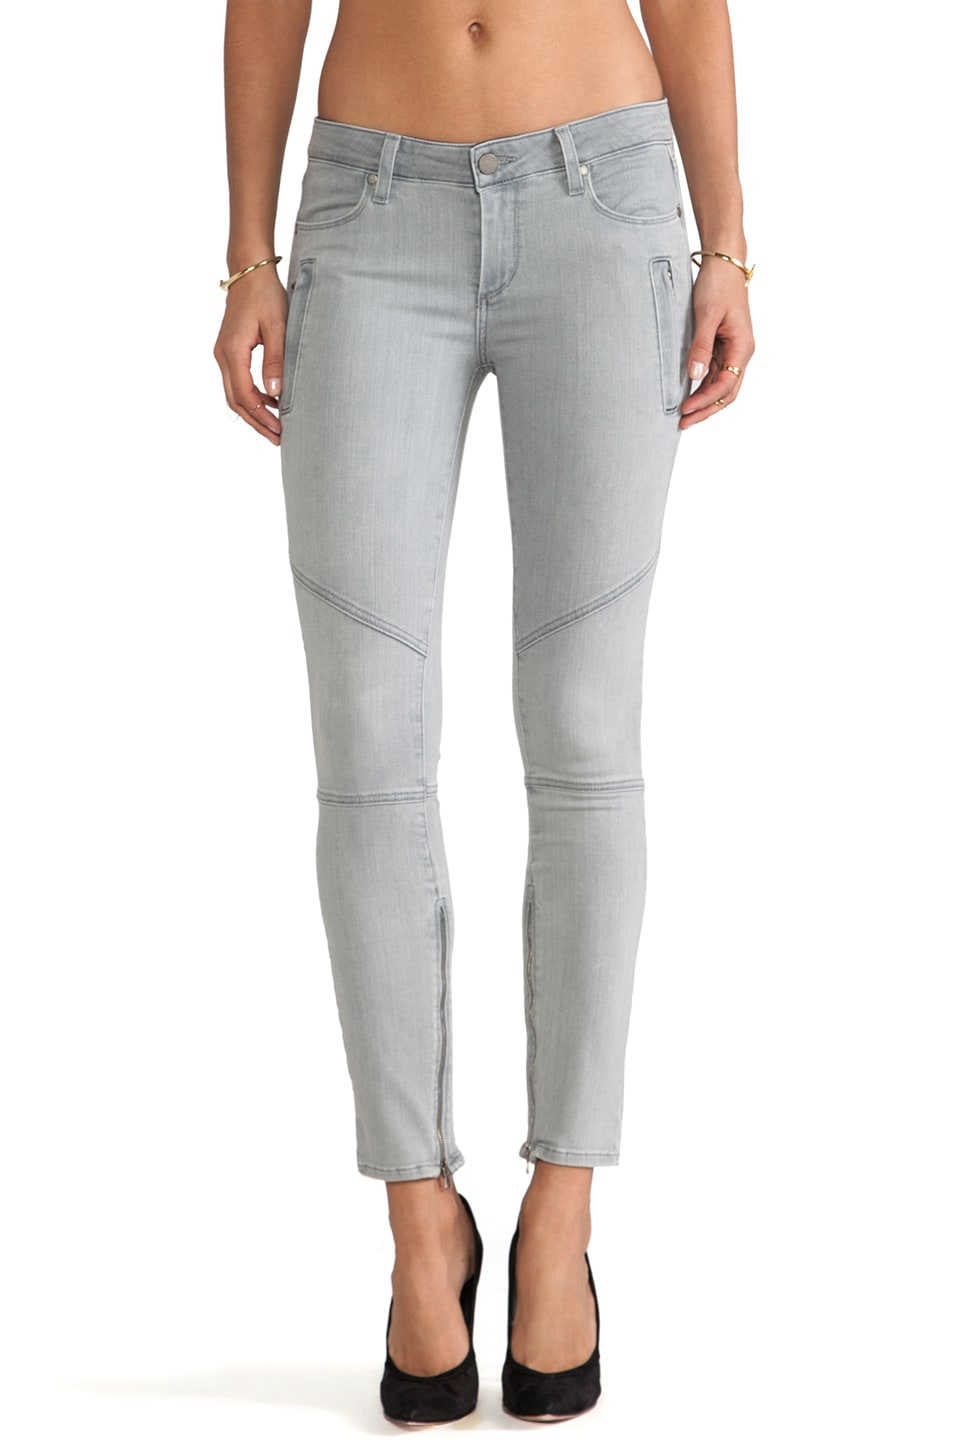 PAIGE Denim Marley Skinny in Montauk Grey